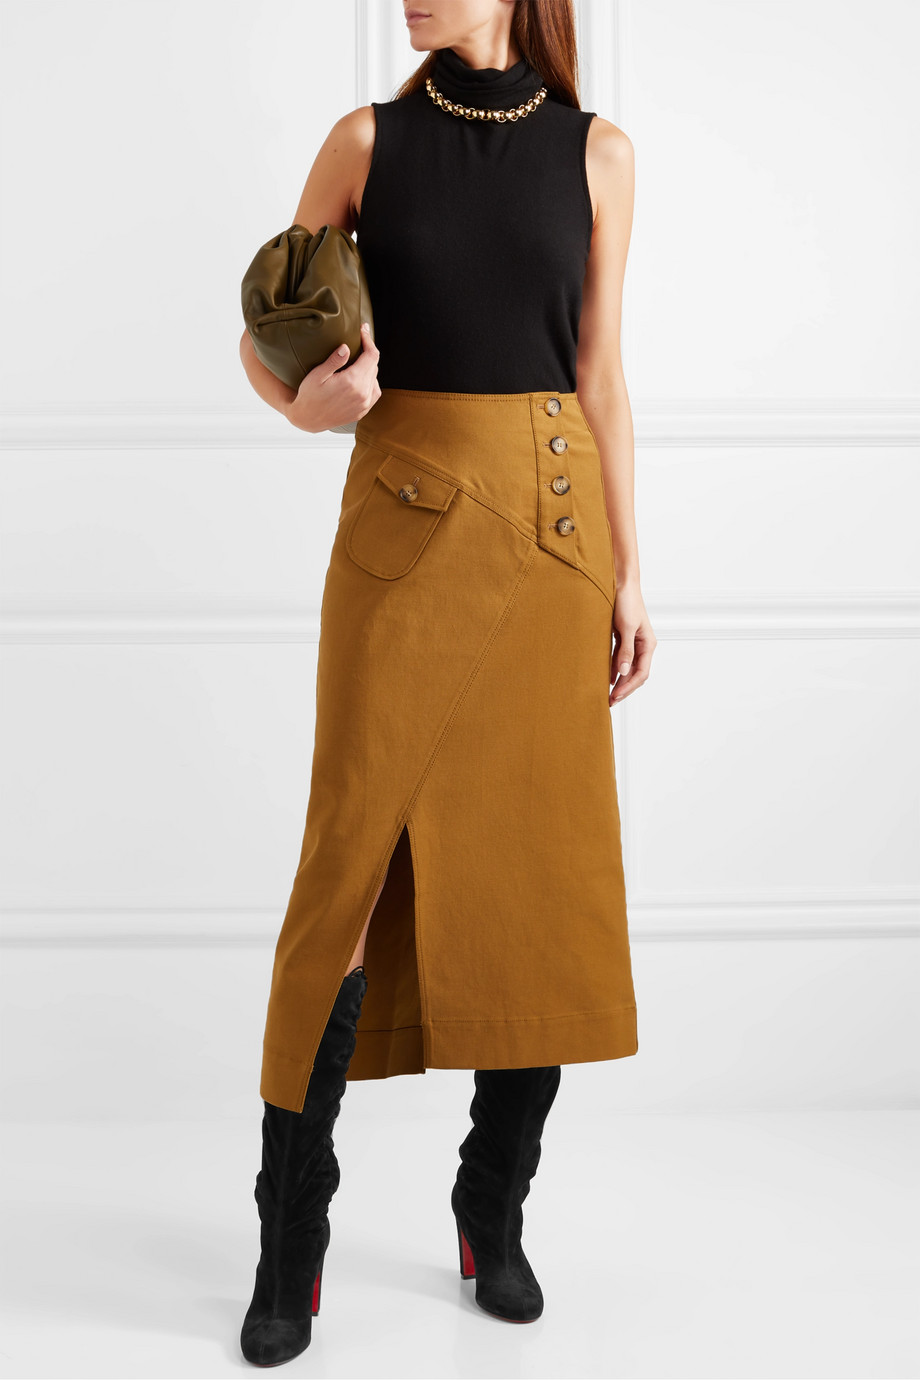 Spring Boots Trend 2019 - Boots with skirts Christian Louboutin